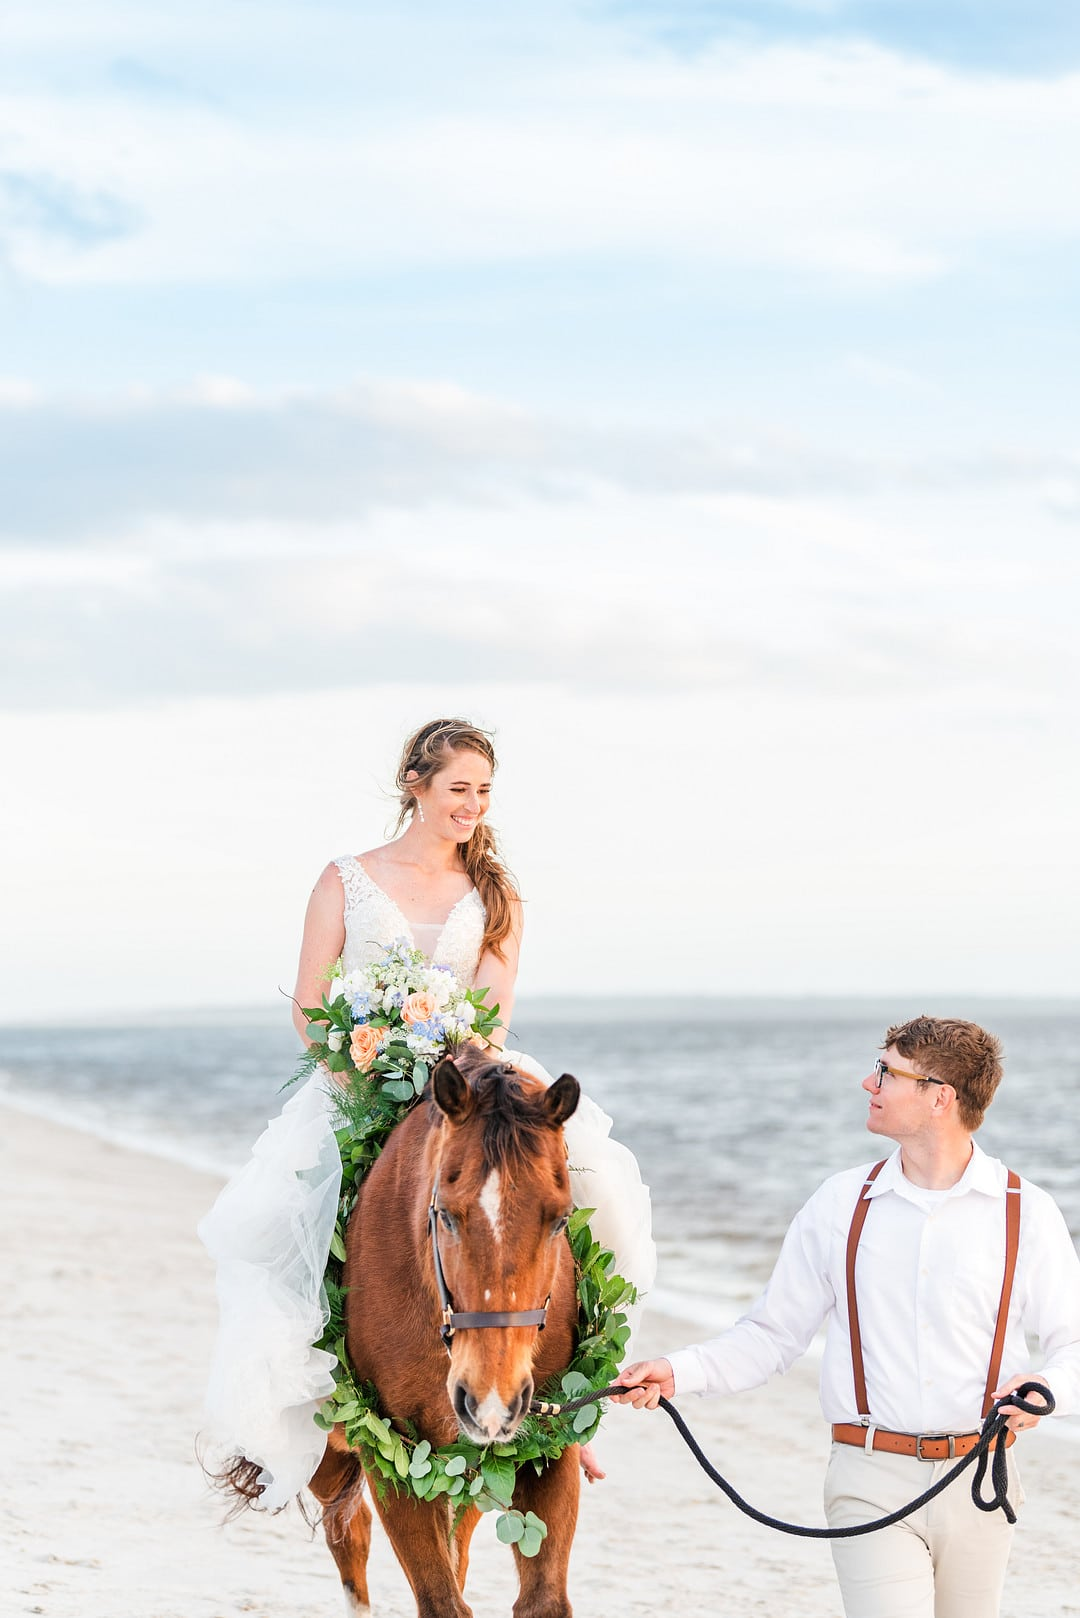 bride riding down the beach on her horse while the groom walks the horse